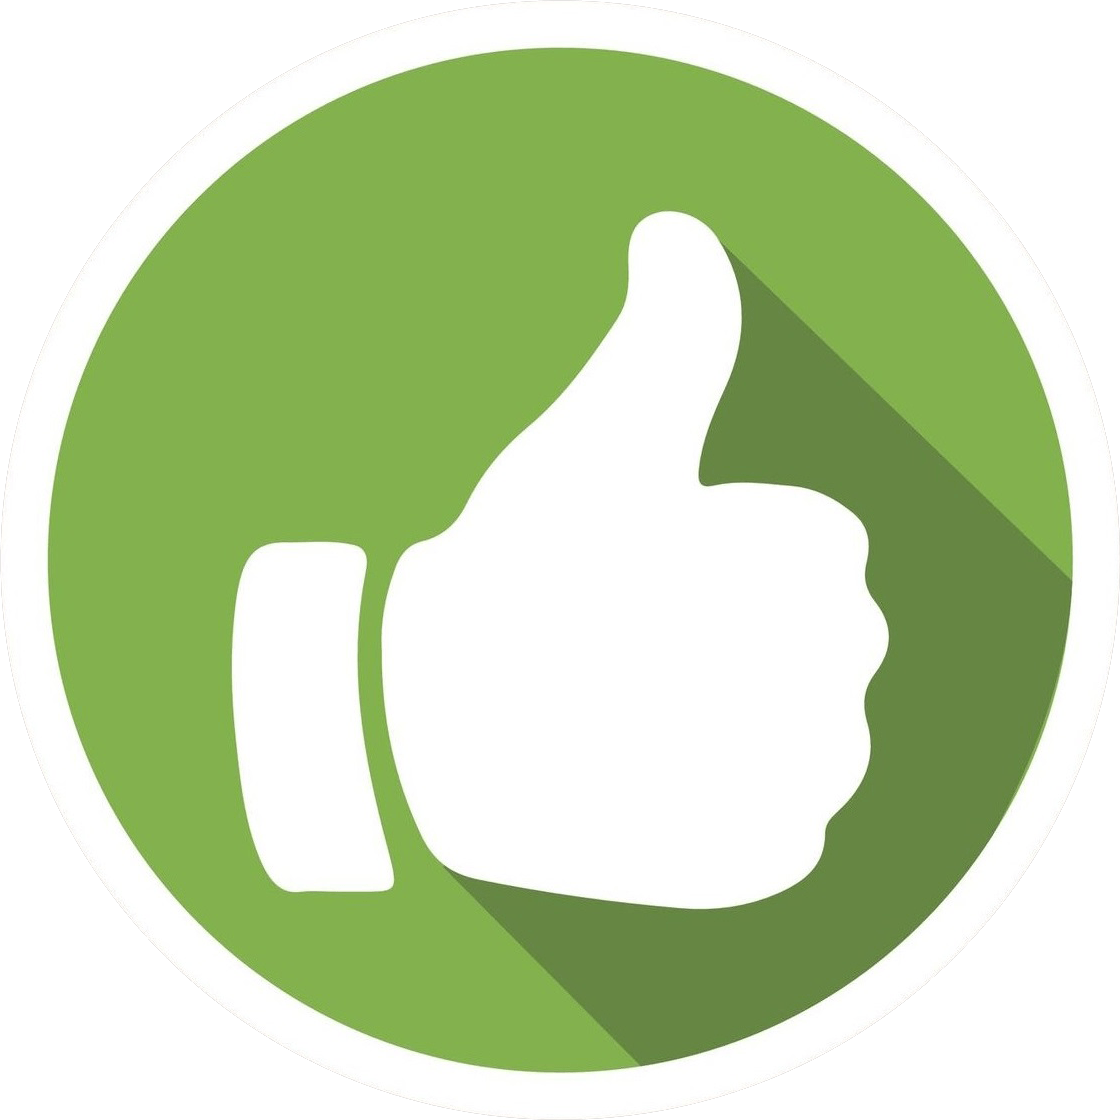 Positive Png - Thumb Up Green Png Clipart - Full Size ...